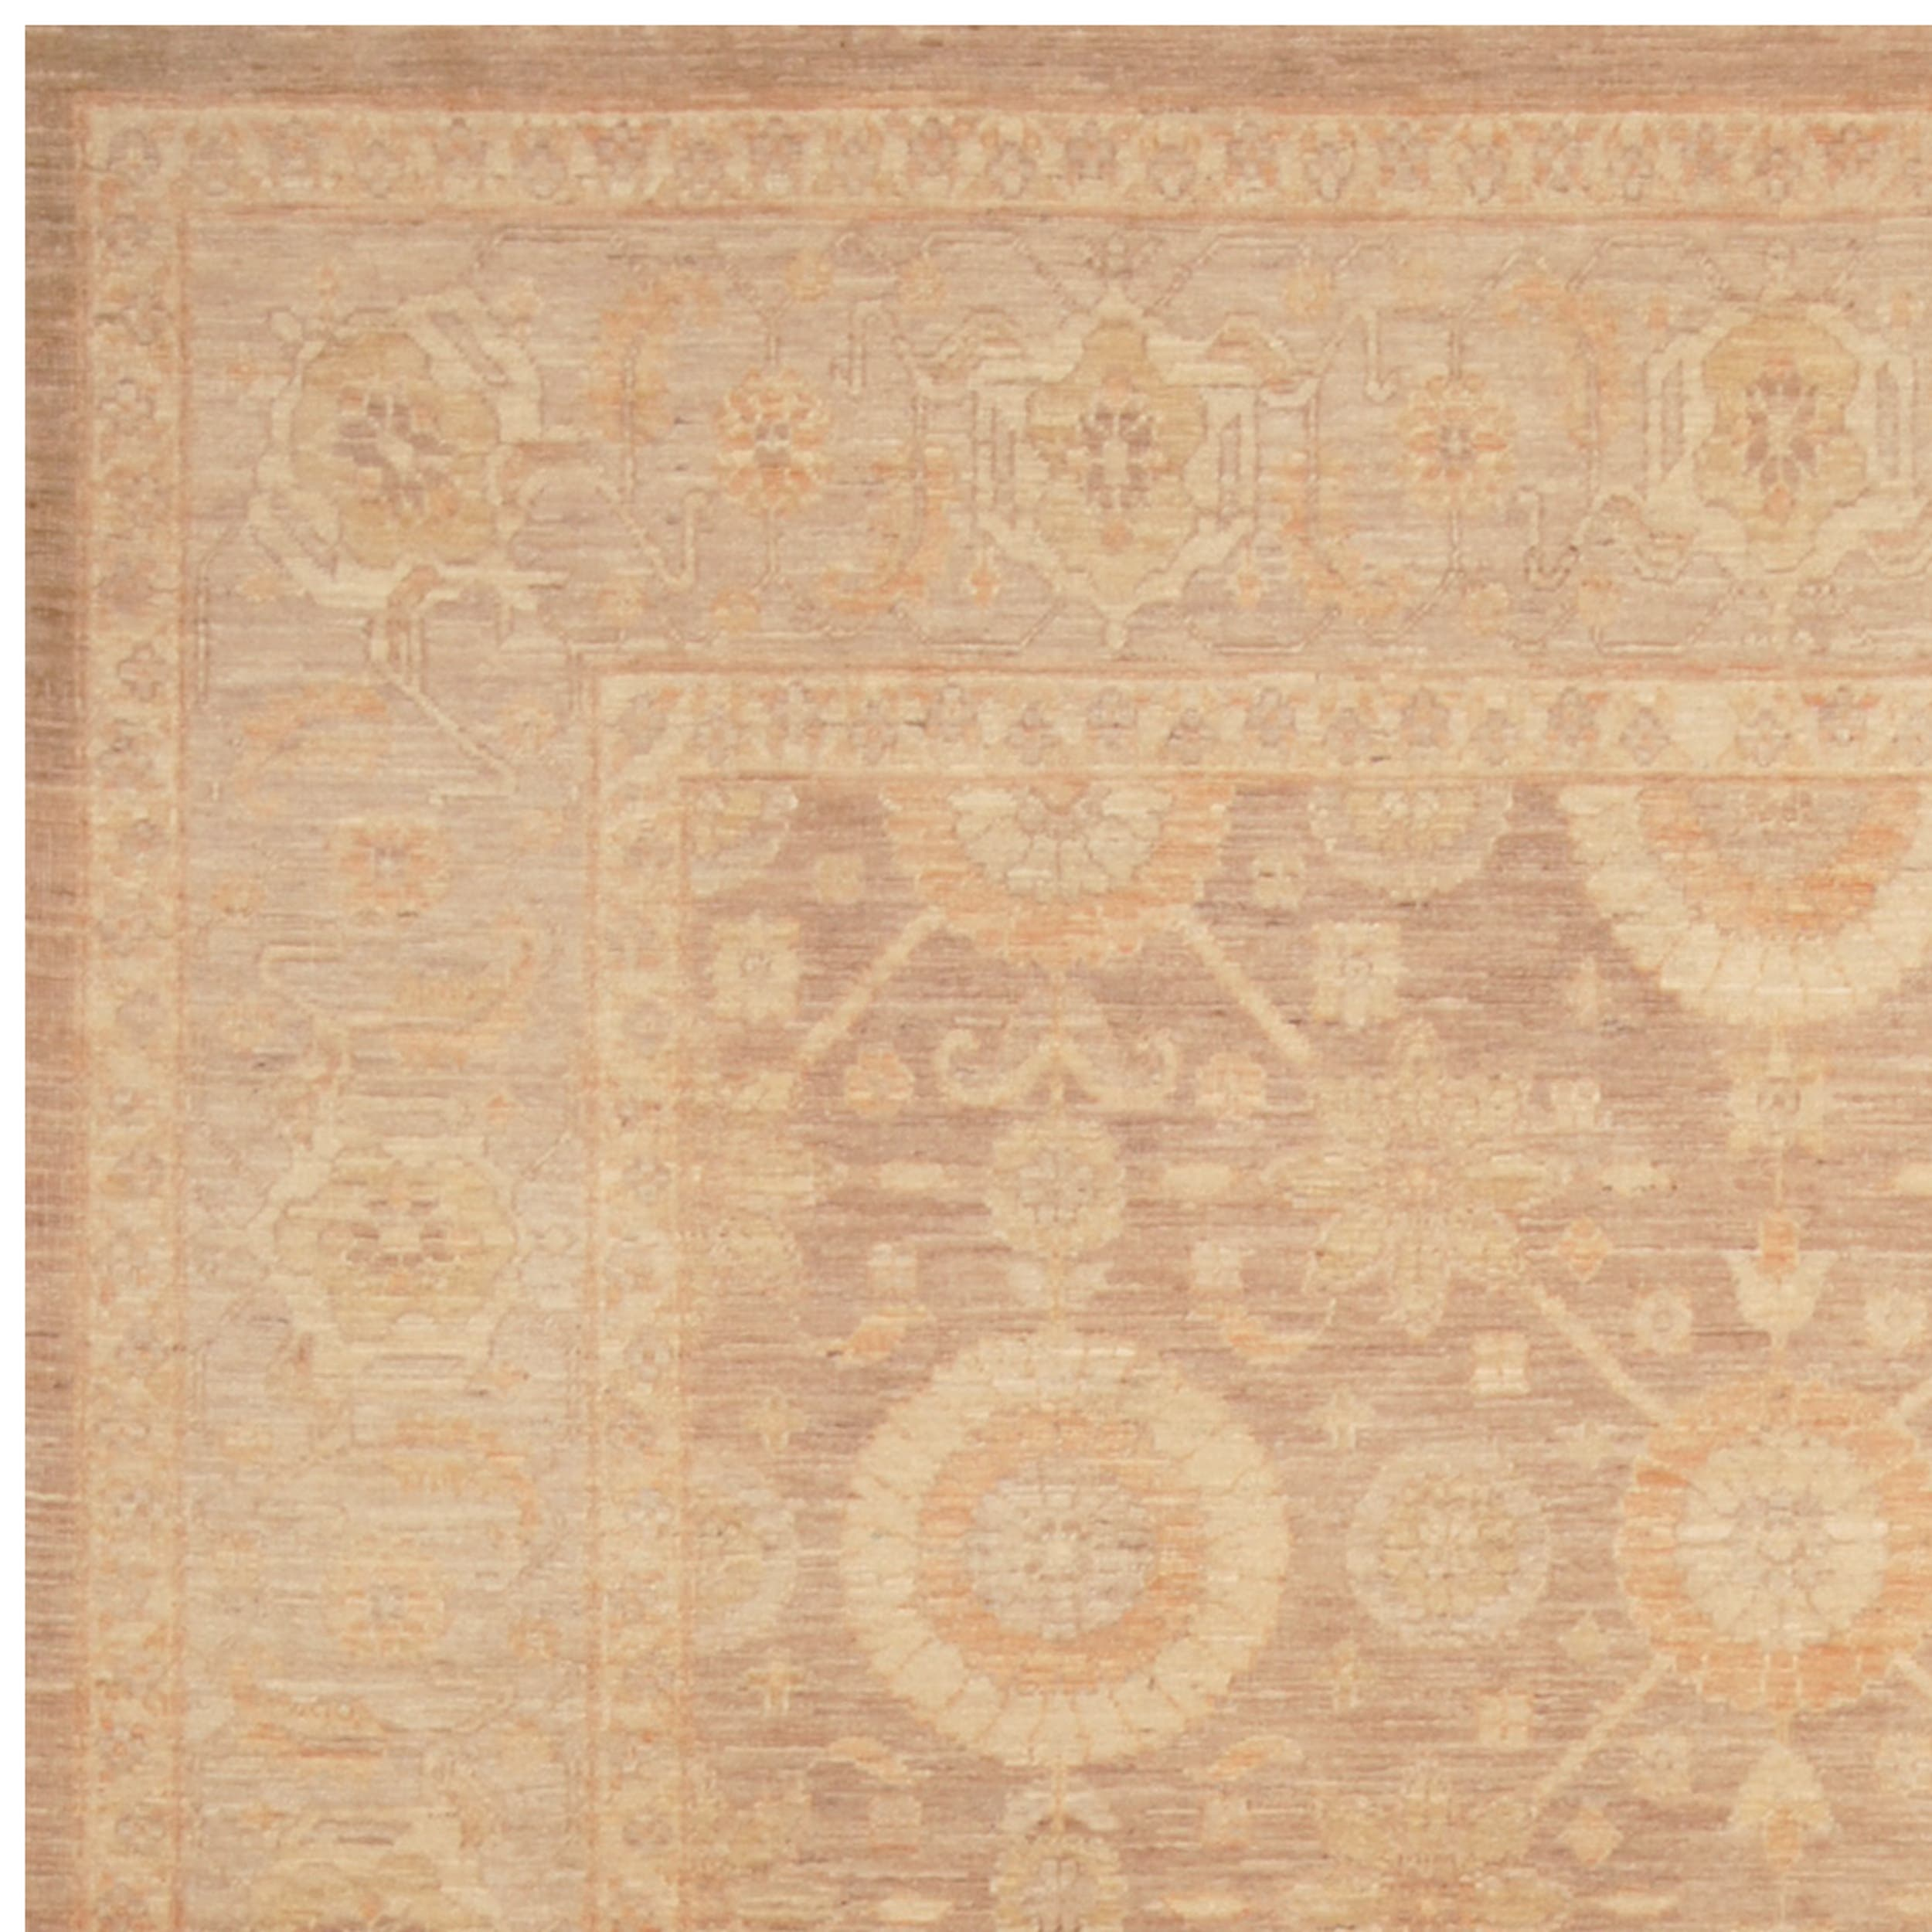 Vegetable Dyed Hand Knotted Floral Oushak Ivory Persian: Buy 6' X 9' Area Rugs Online At Overstock